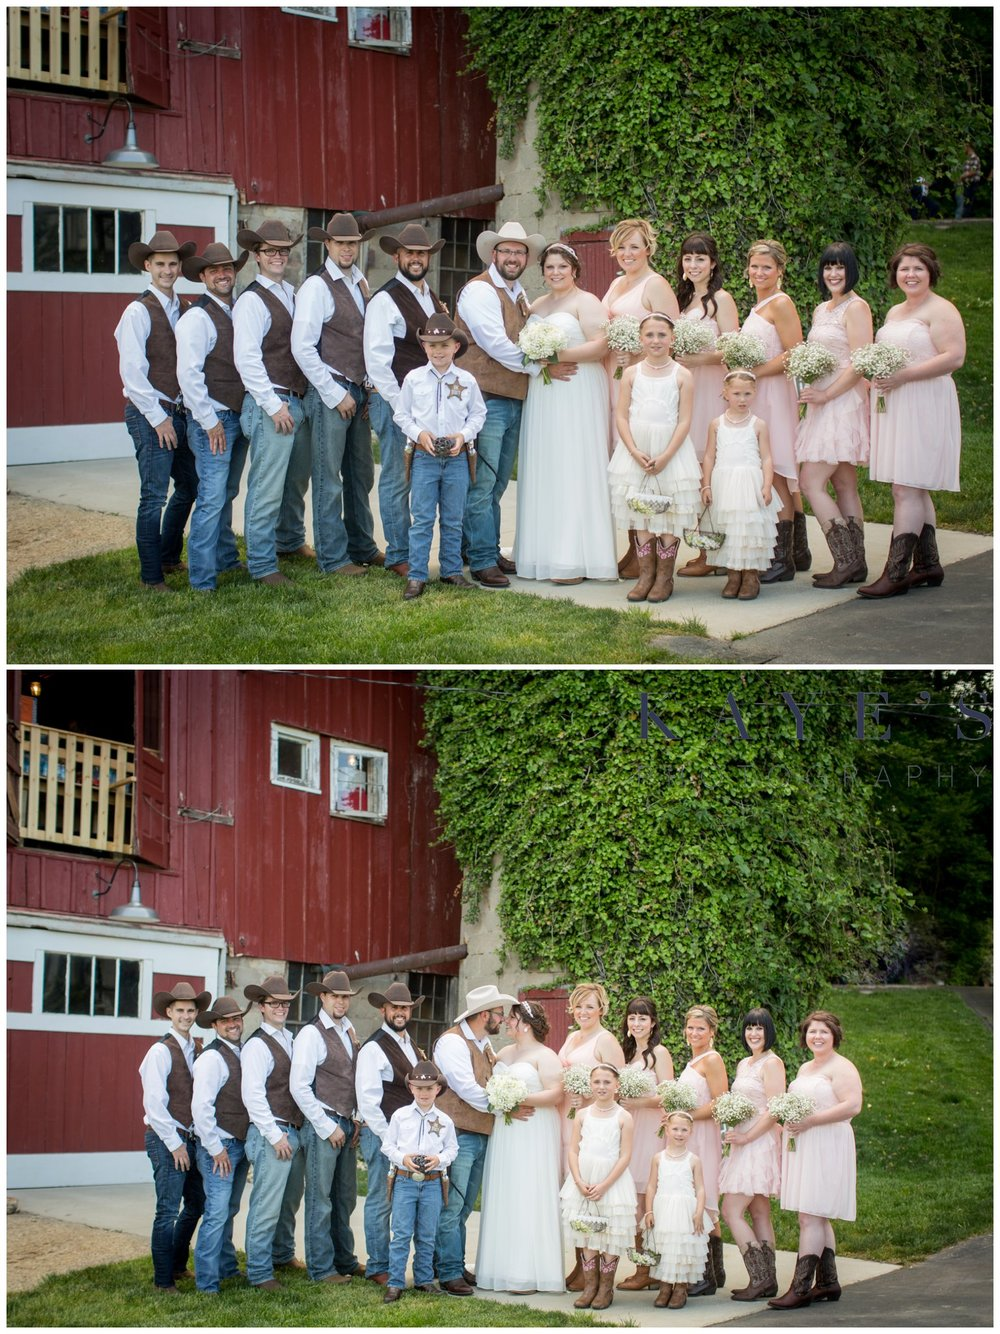 Hudsonville Michigan Wedding Photographer, Hudsonville Michigan Wedding Photography, The Old Wooden Barn Hudsonville Michigan Wedding photography, bride and groom with wedding party, barn wedding, wedding party in front of barn